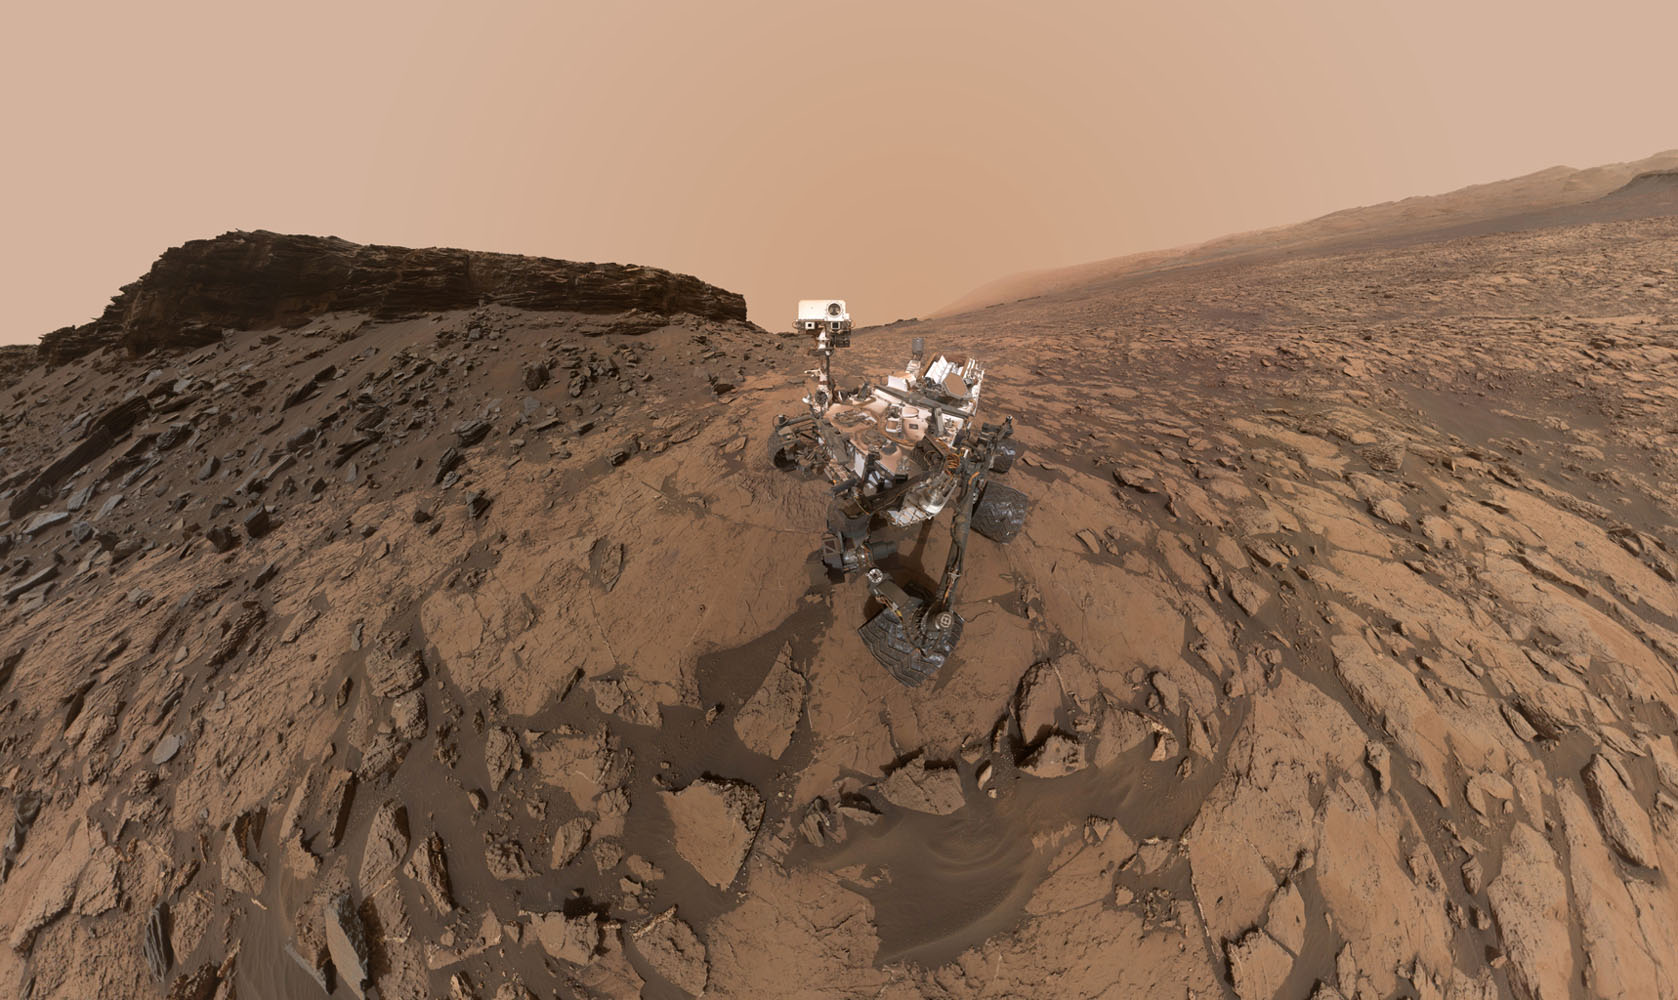 Curiosity Mars rover at Mount Sharp (click to emlarge). Image: NASA/JPL-Caltech/MSSS